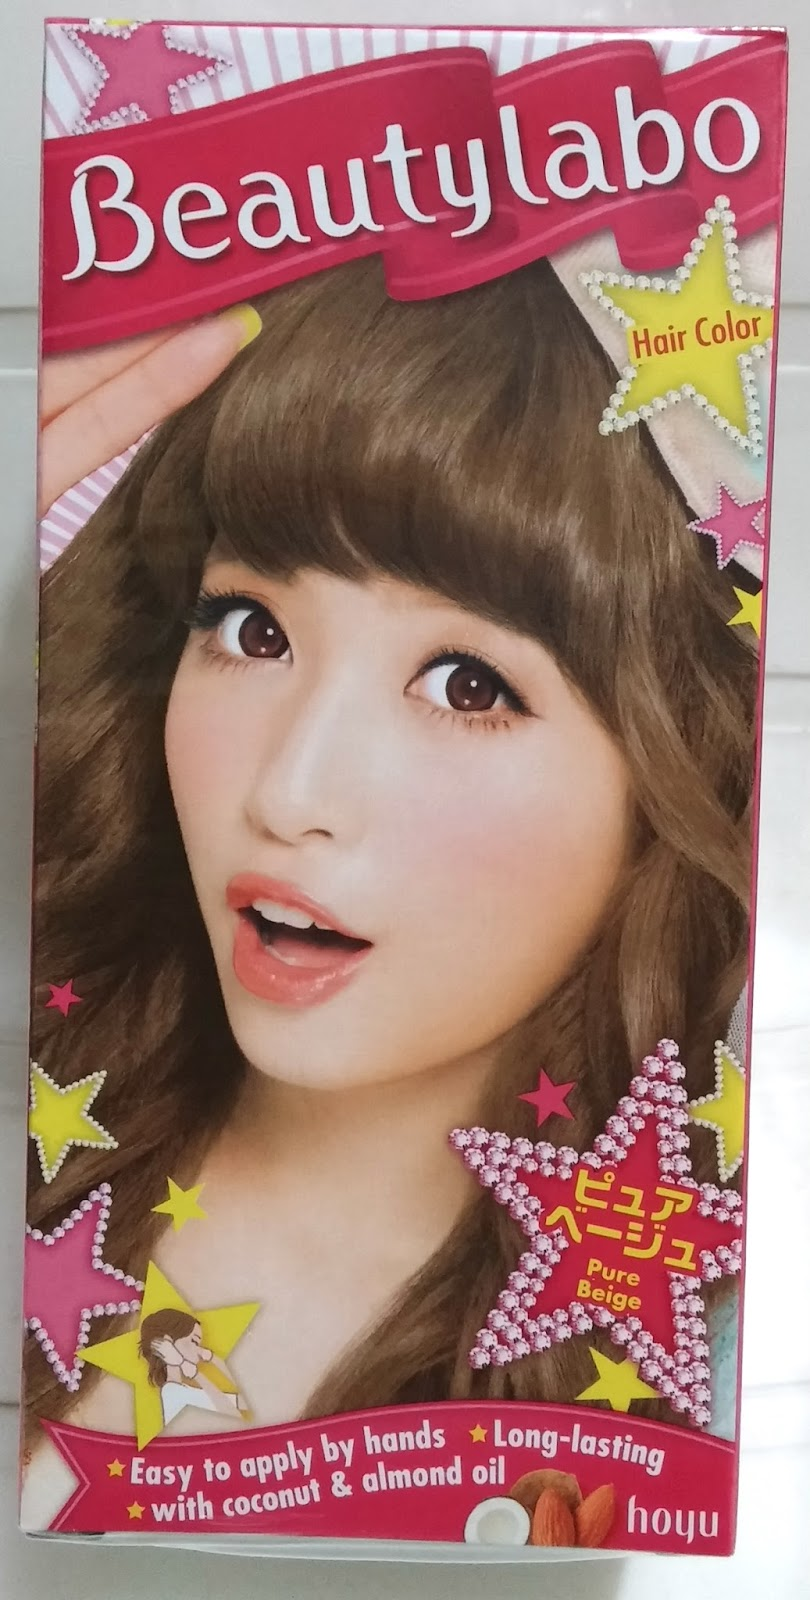 Wateryscenery Hoyu Beautylabo Hair Color Pure Beige Review